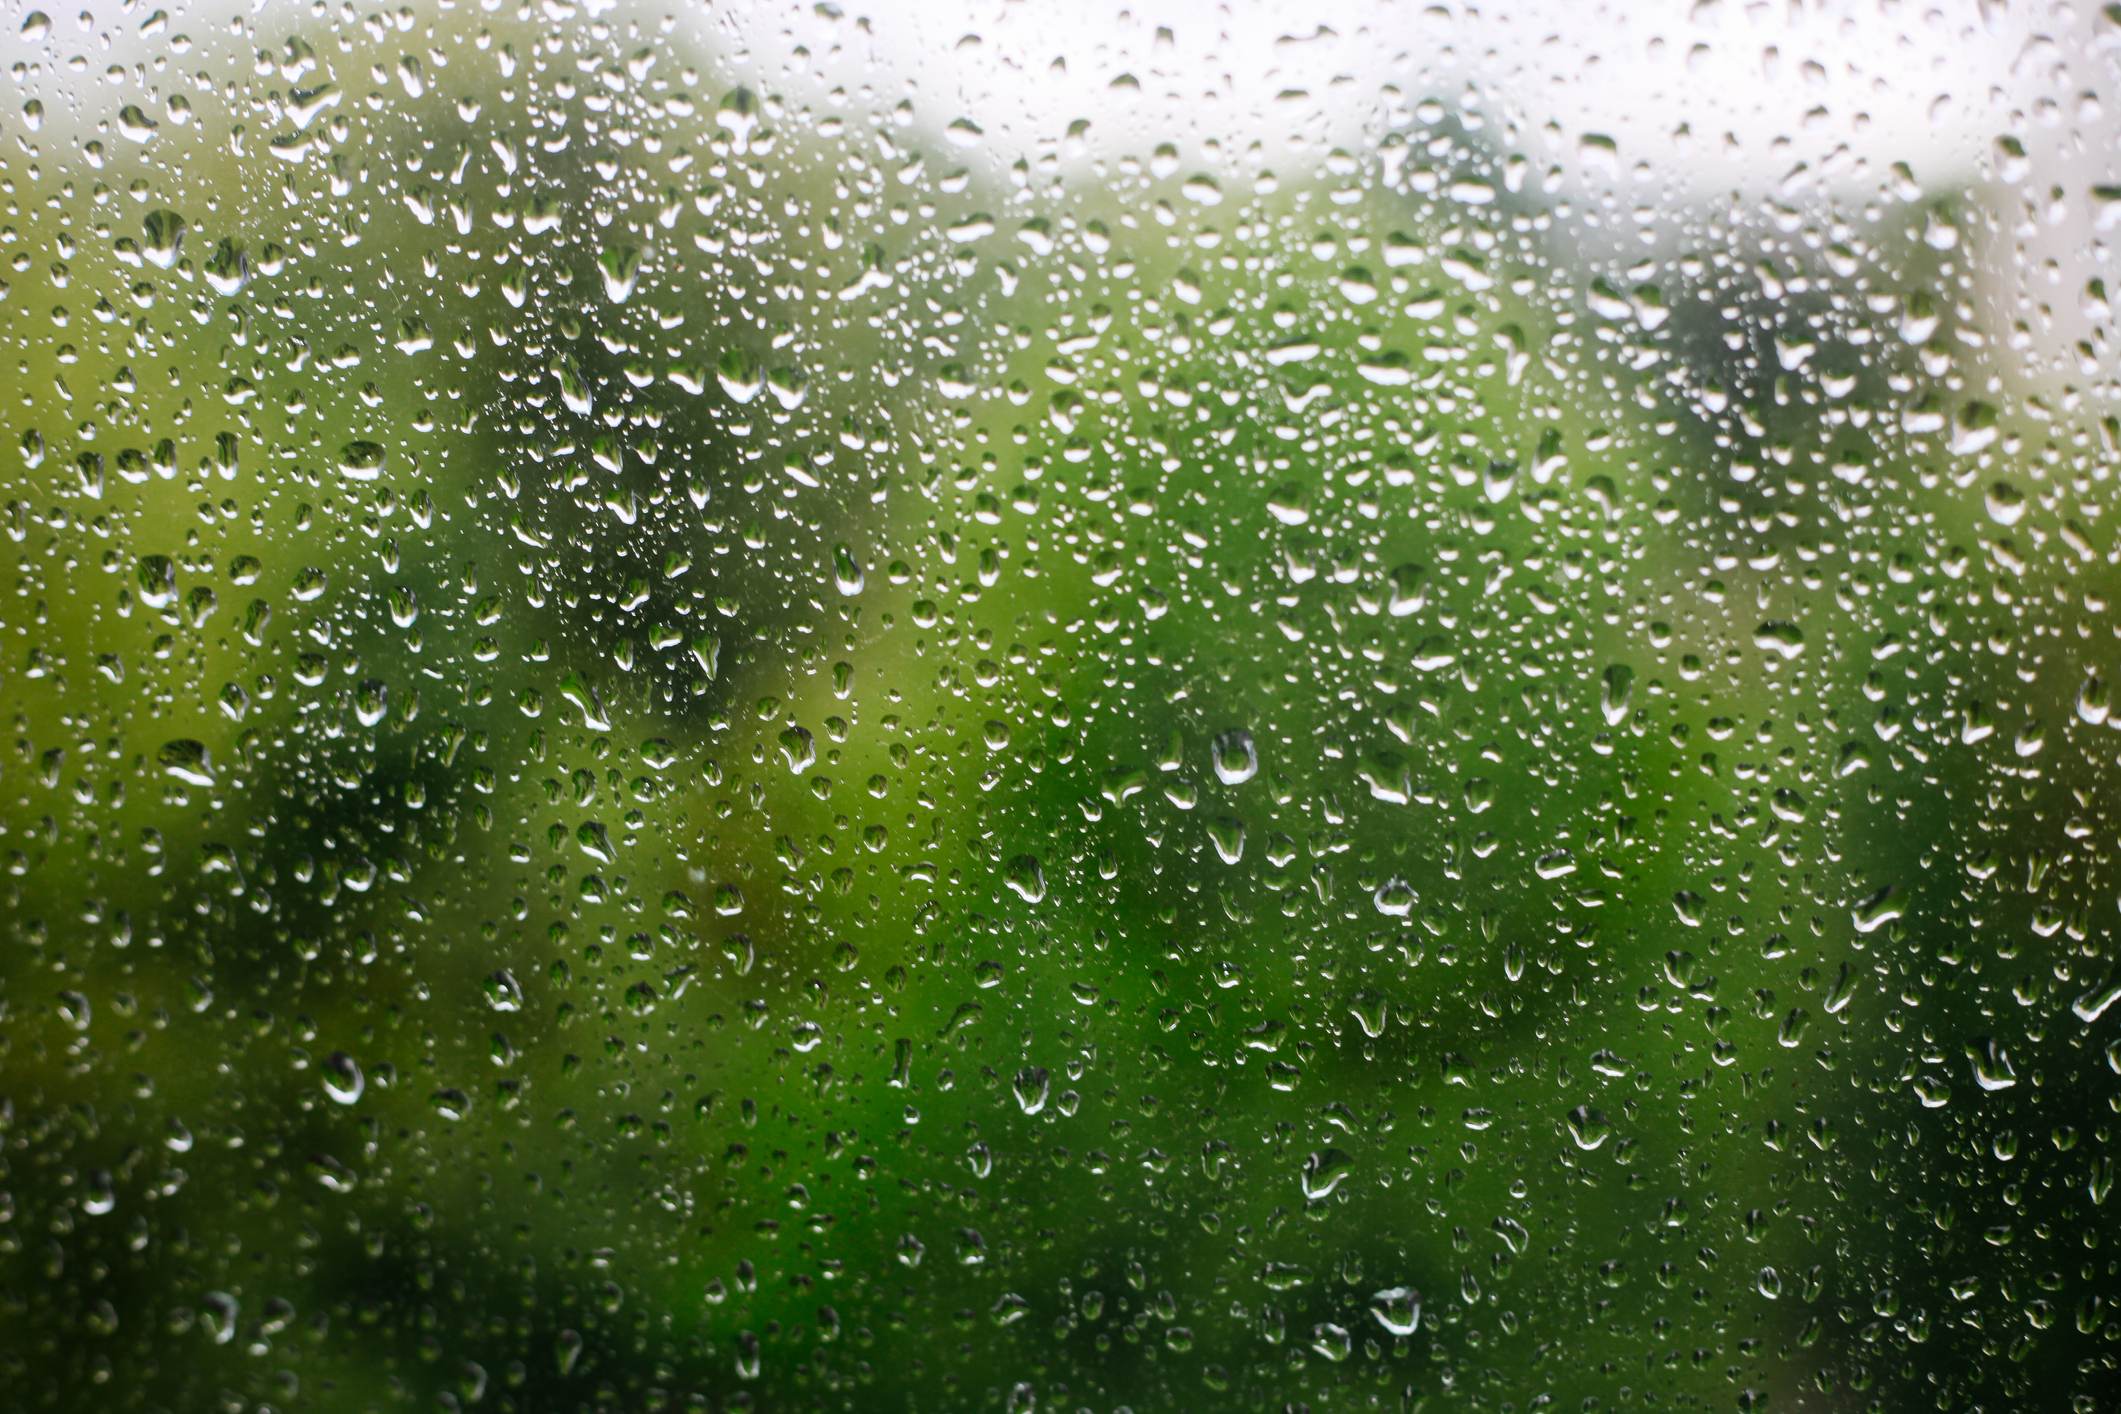 Close up of rain drops on window on the rainy day (Getty Images)